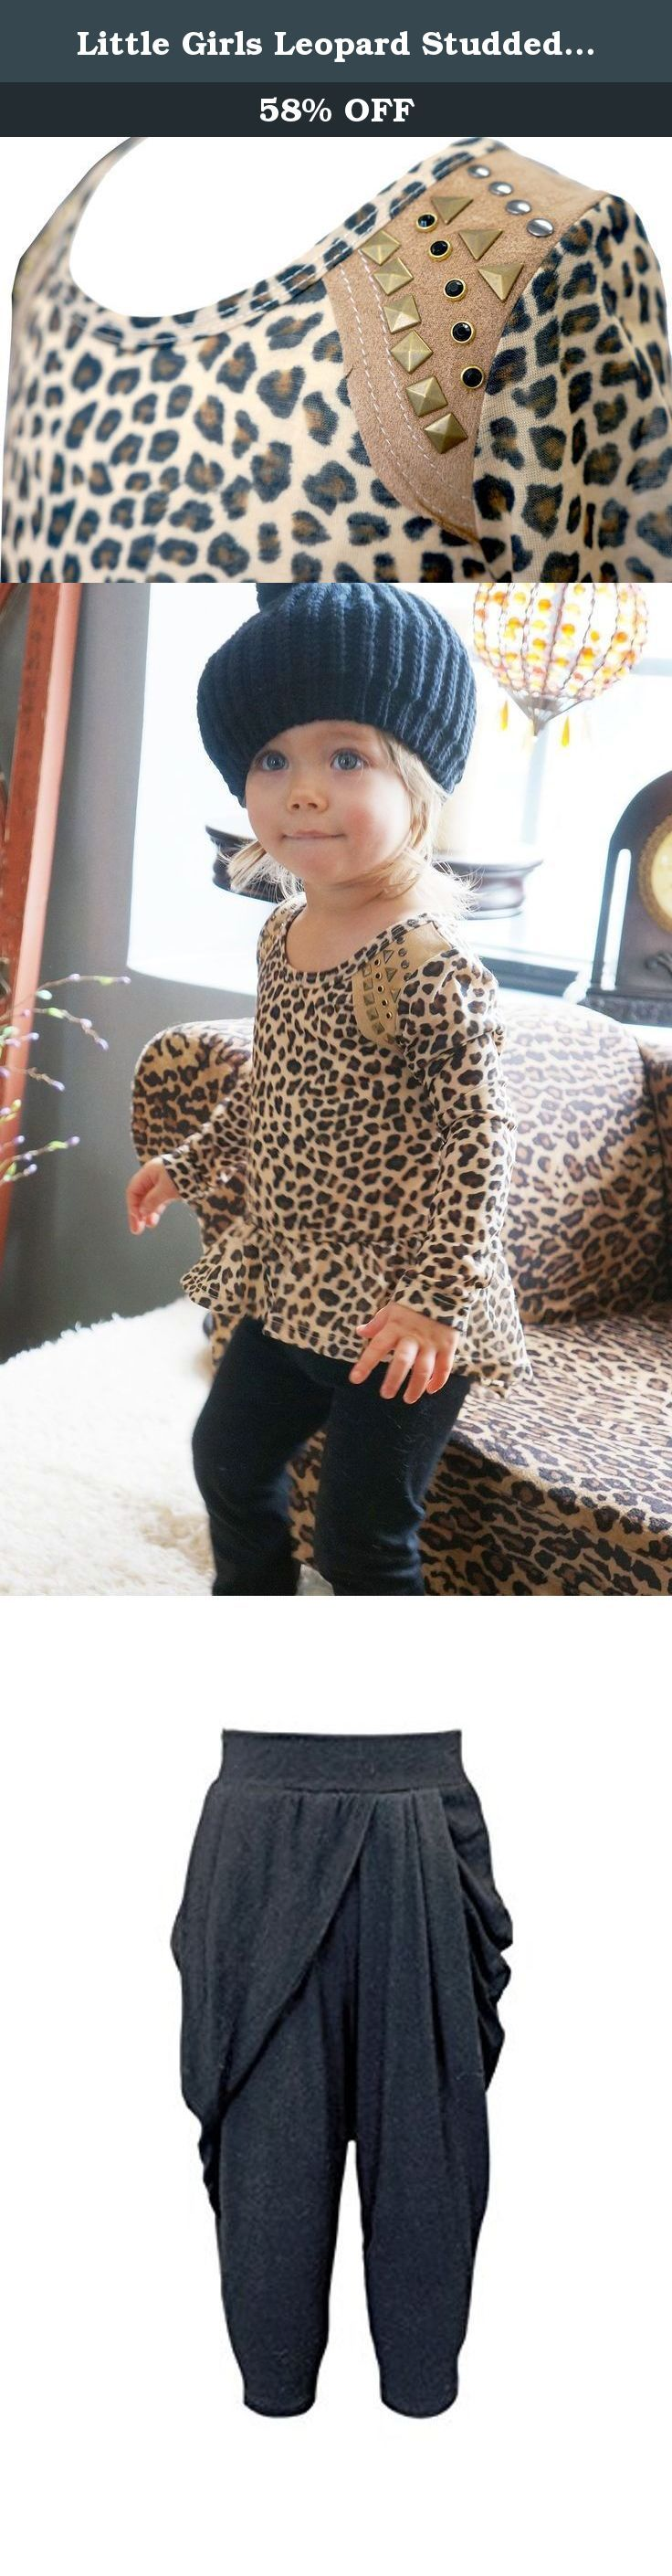 Little Girls Leopard Studded Peplum Hi Low Top, 2T-4T (4T). Show off your rocker chic style in this hi low top by Baby Sara! The long sleeve top features a peplum hi low ruffle, leopard print throughout, and hotfix stud embellishments to complete the look! The perfect top to make her shine from the crowd!.